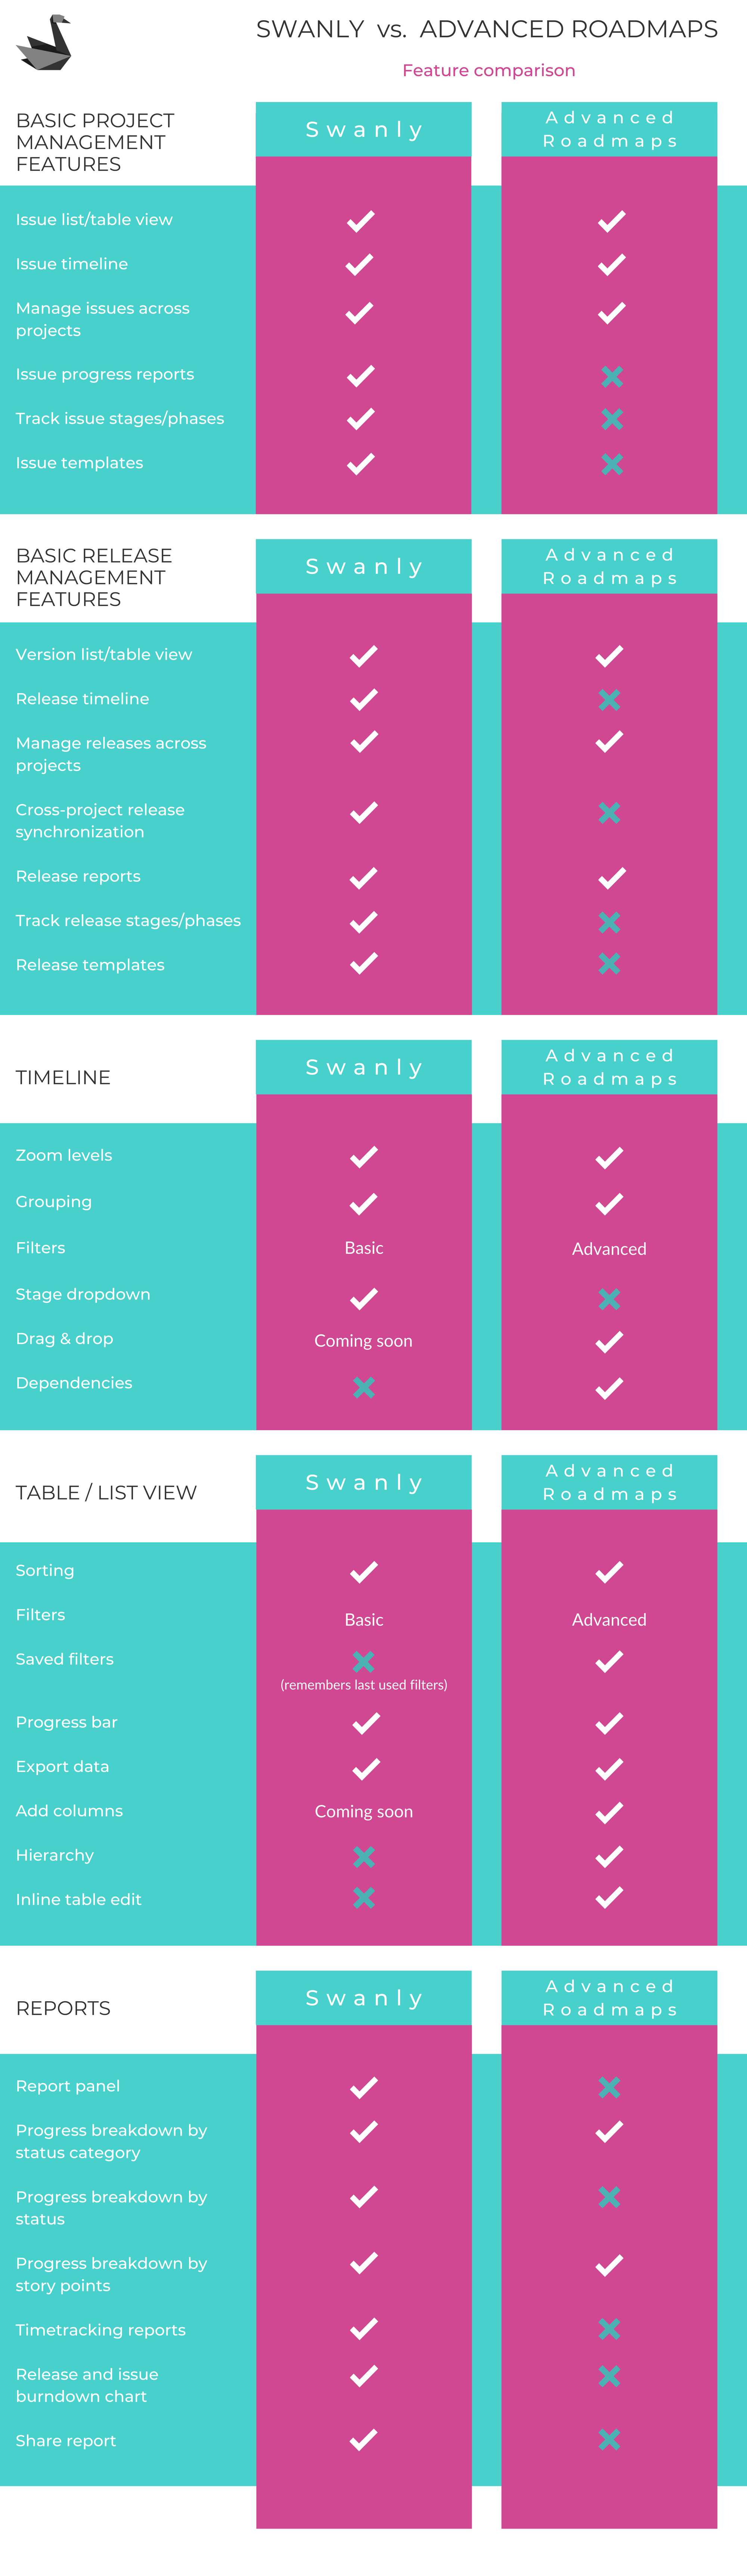 Infographic with feature comparison between Swanly and Advanced Roadmaps